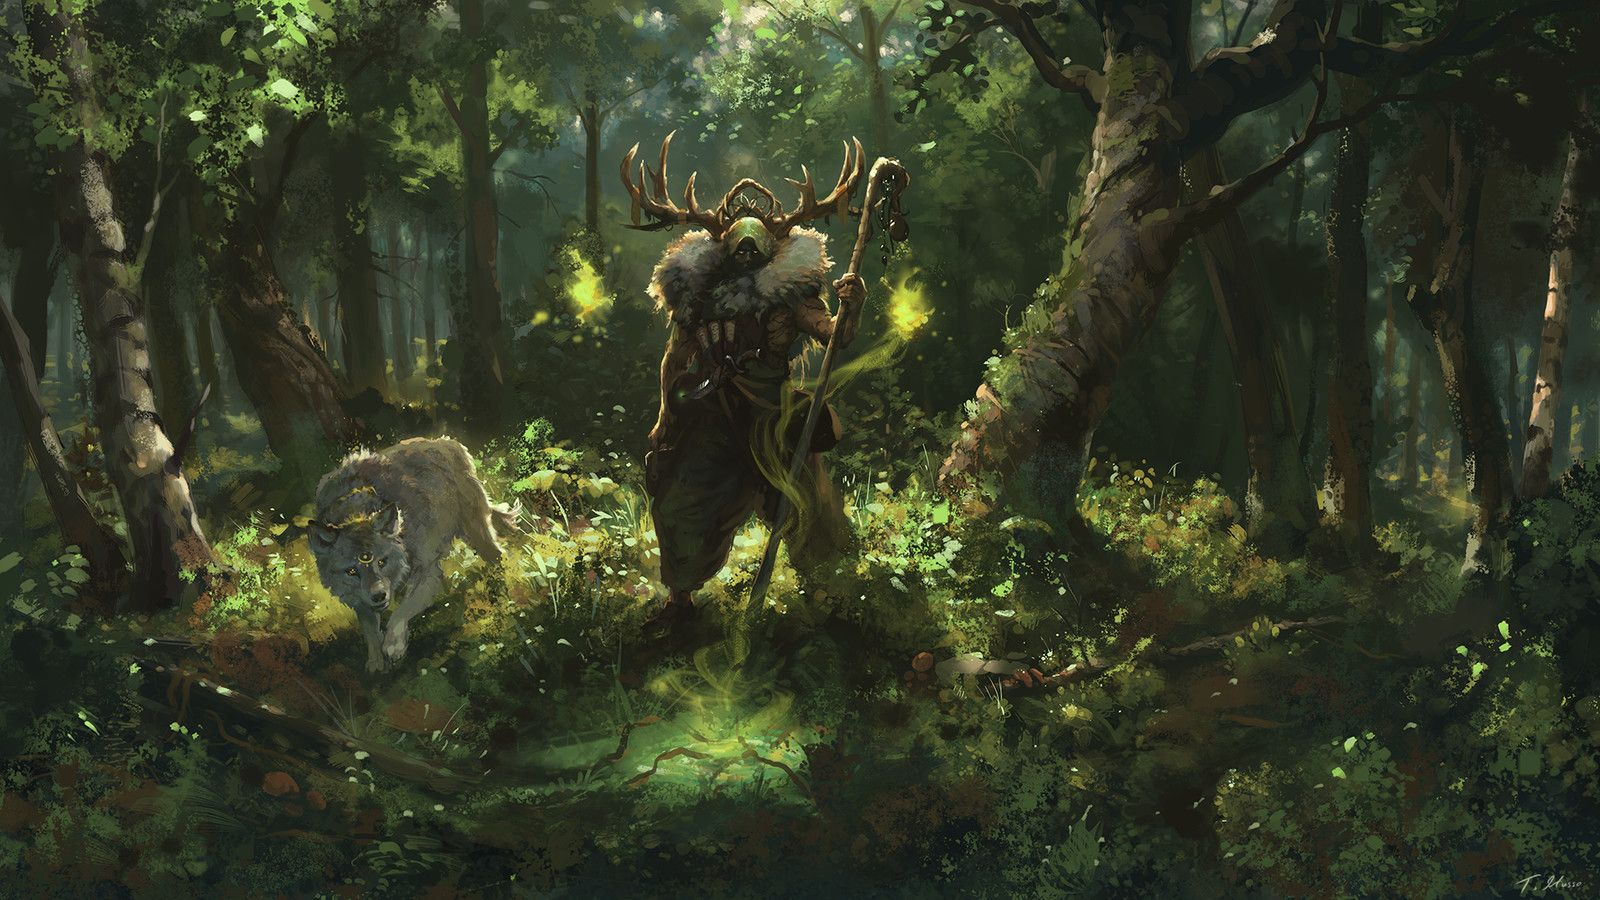 Druids Of Lornwood Teemu Husso On Artstation At Https Www